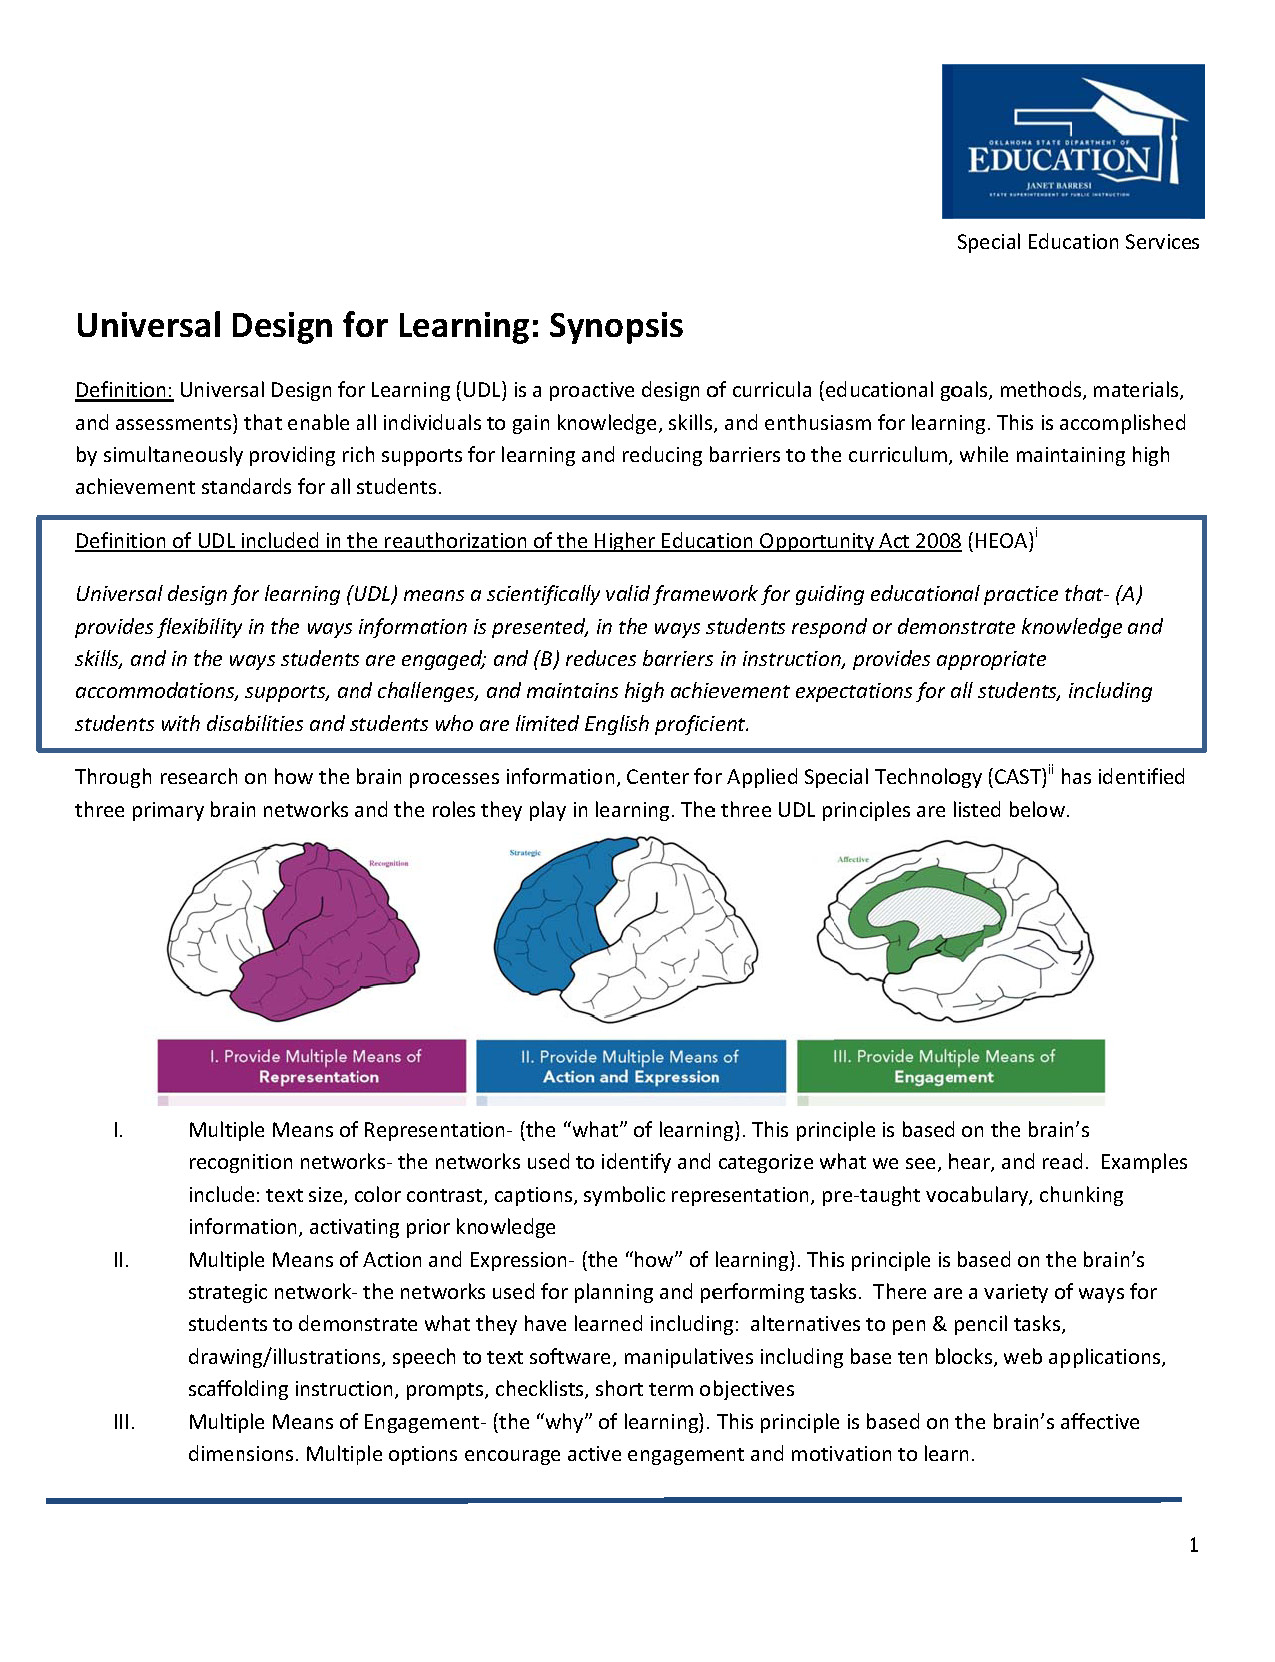 UDL Synopsis